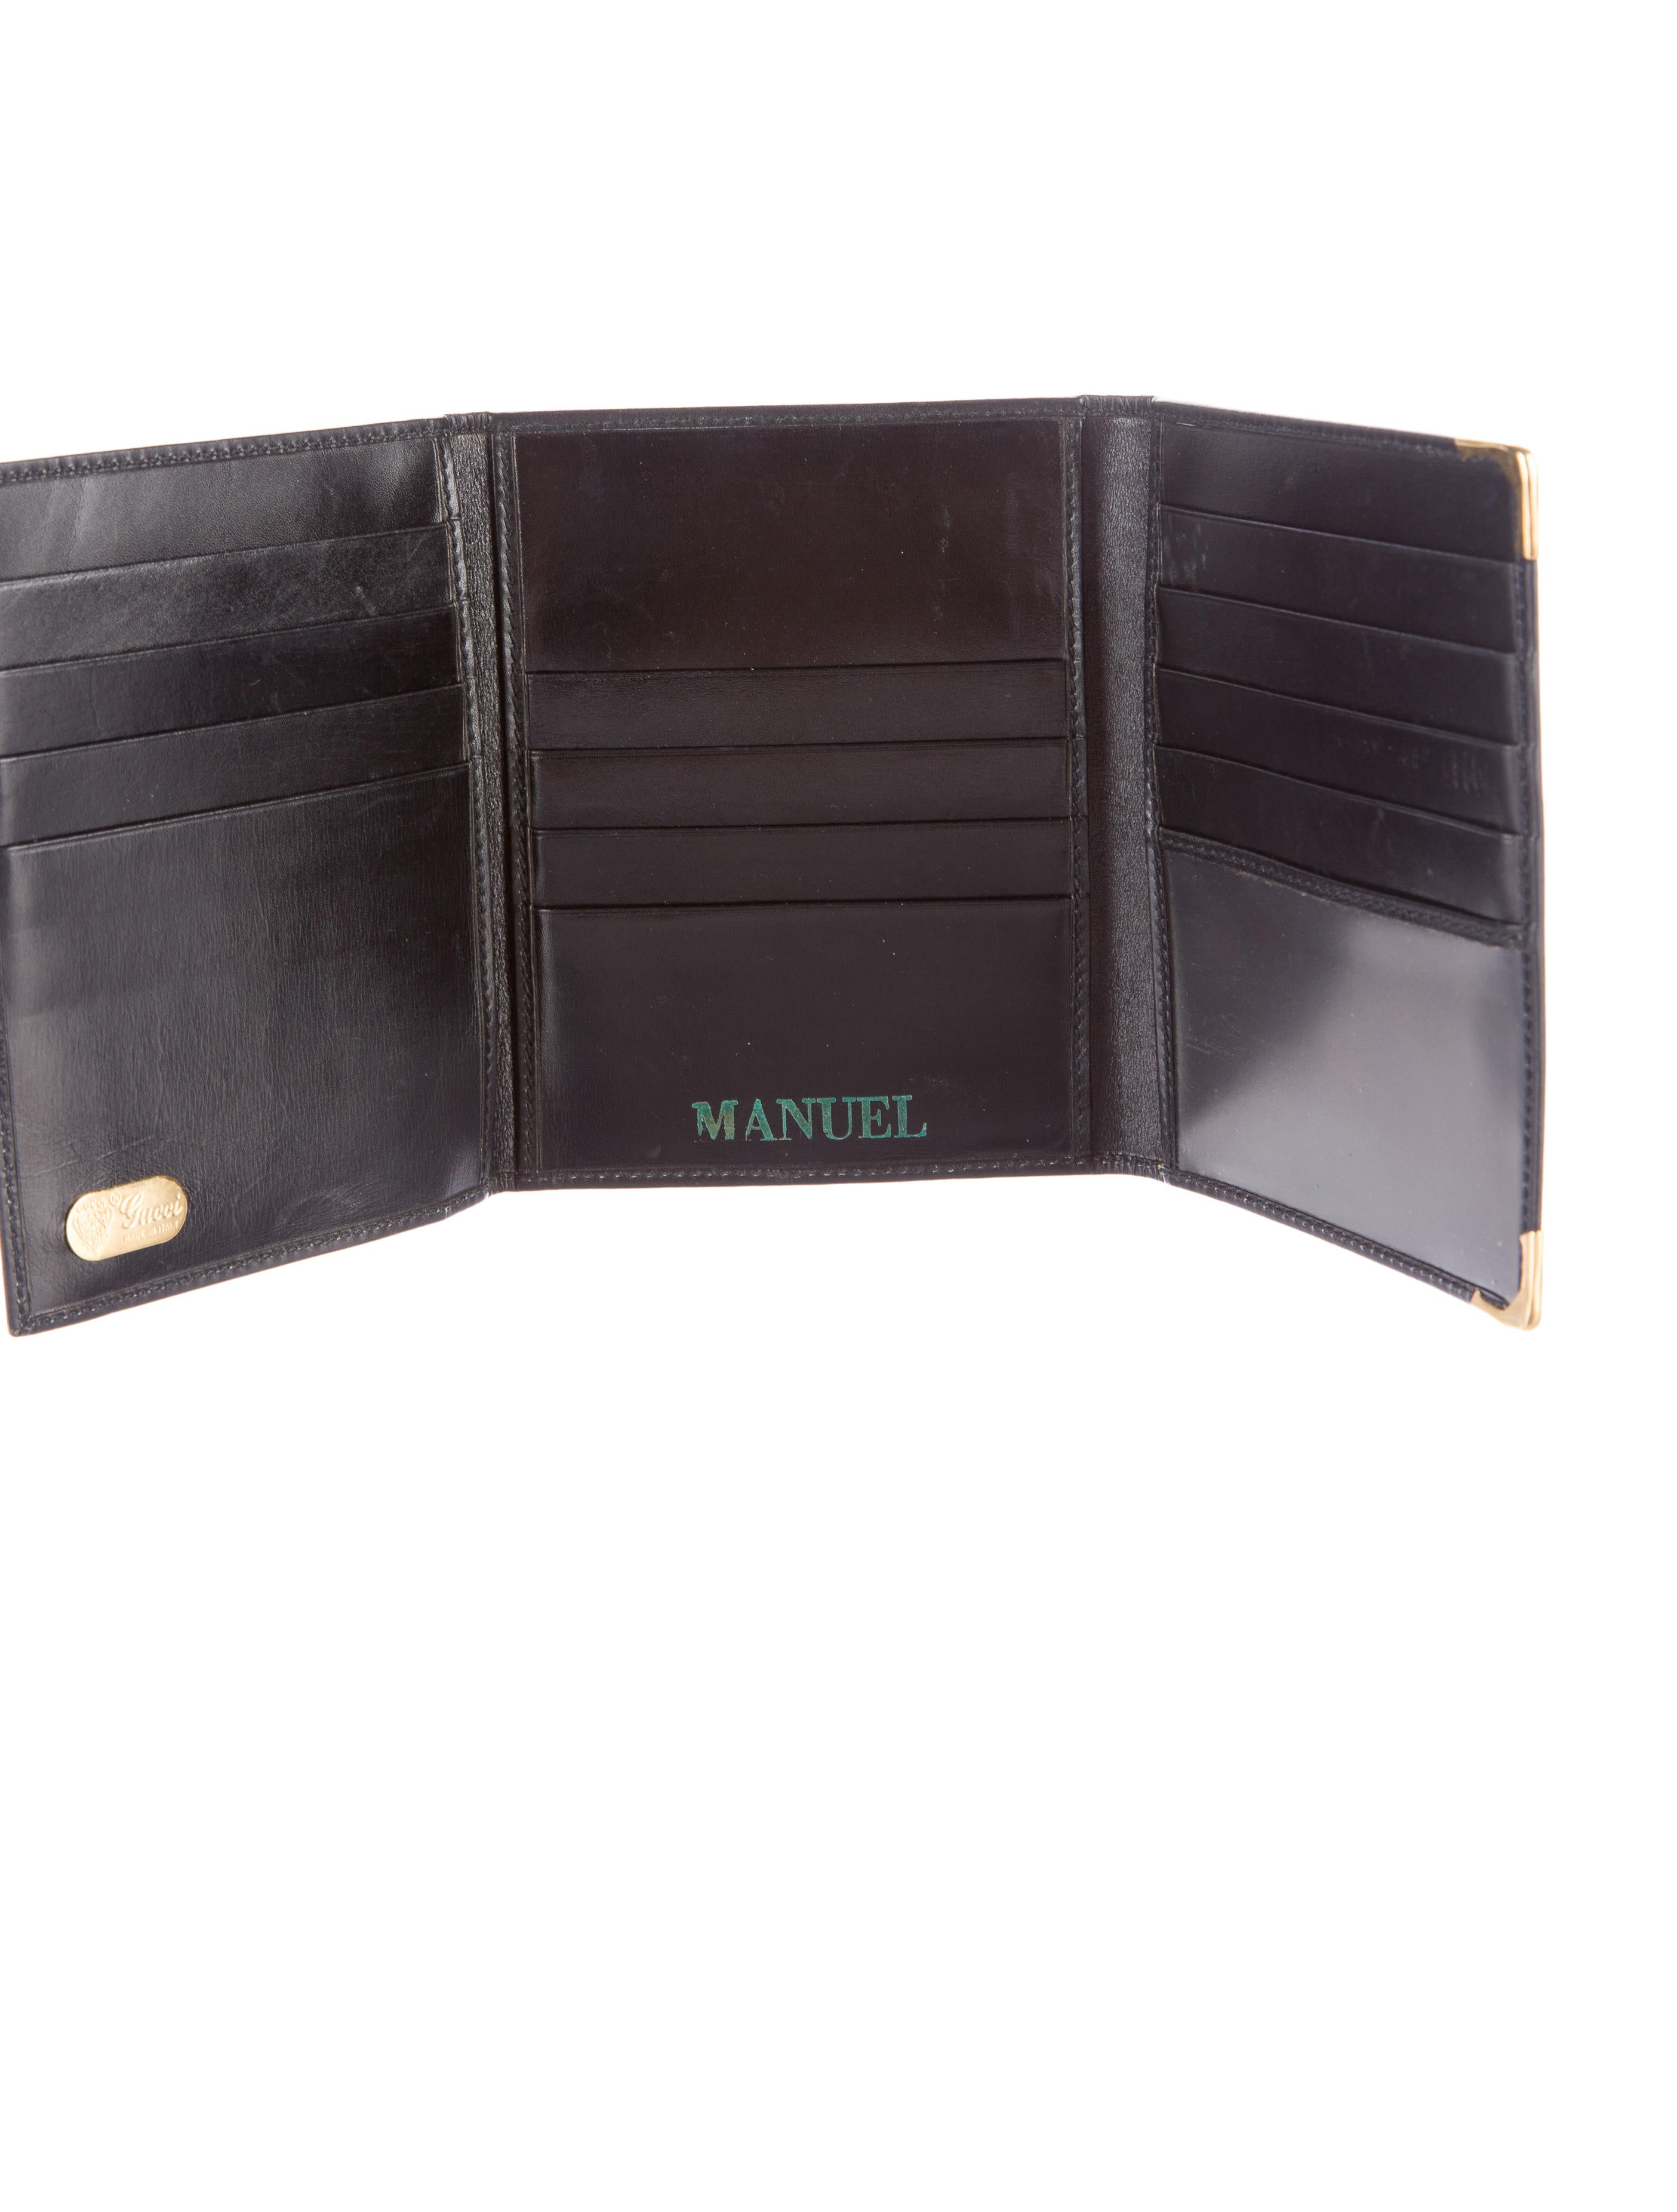 c4add799a076 Gucci Tri Fold Mens Wallets | Stanford Center for Opportunity Policy ...